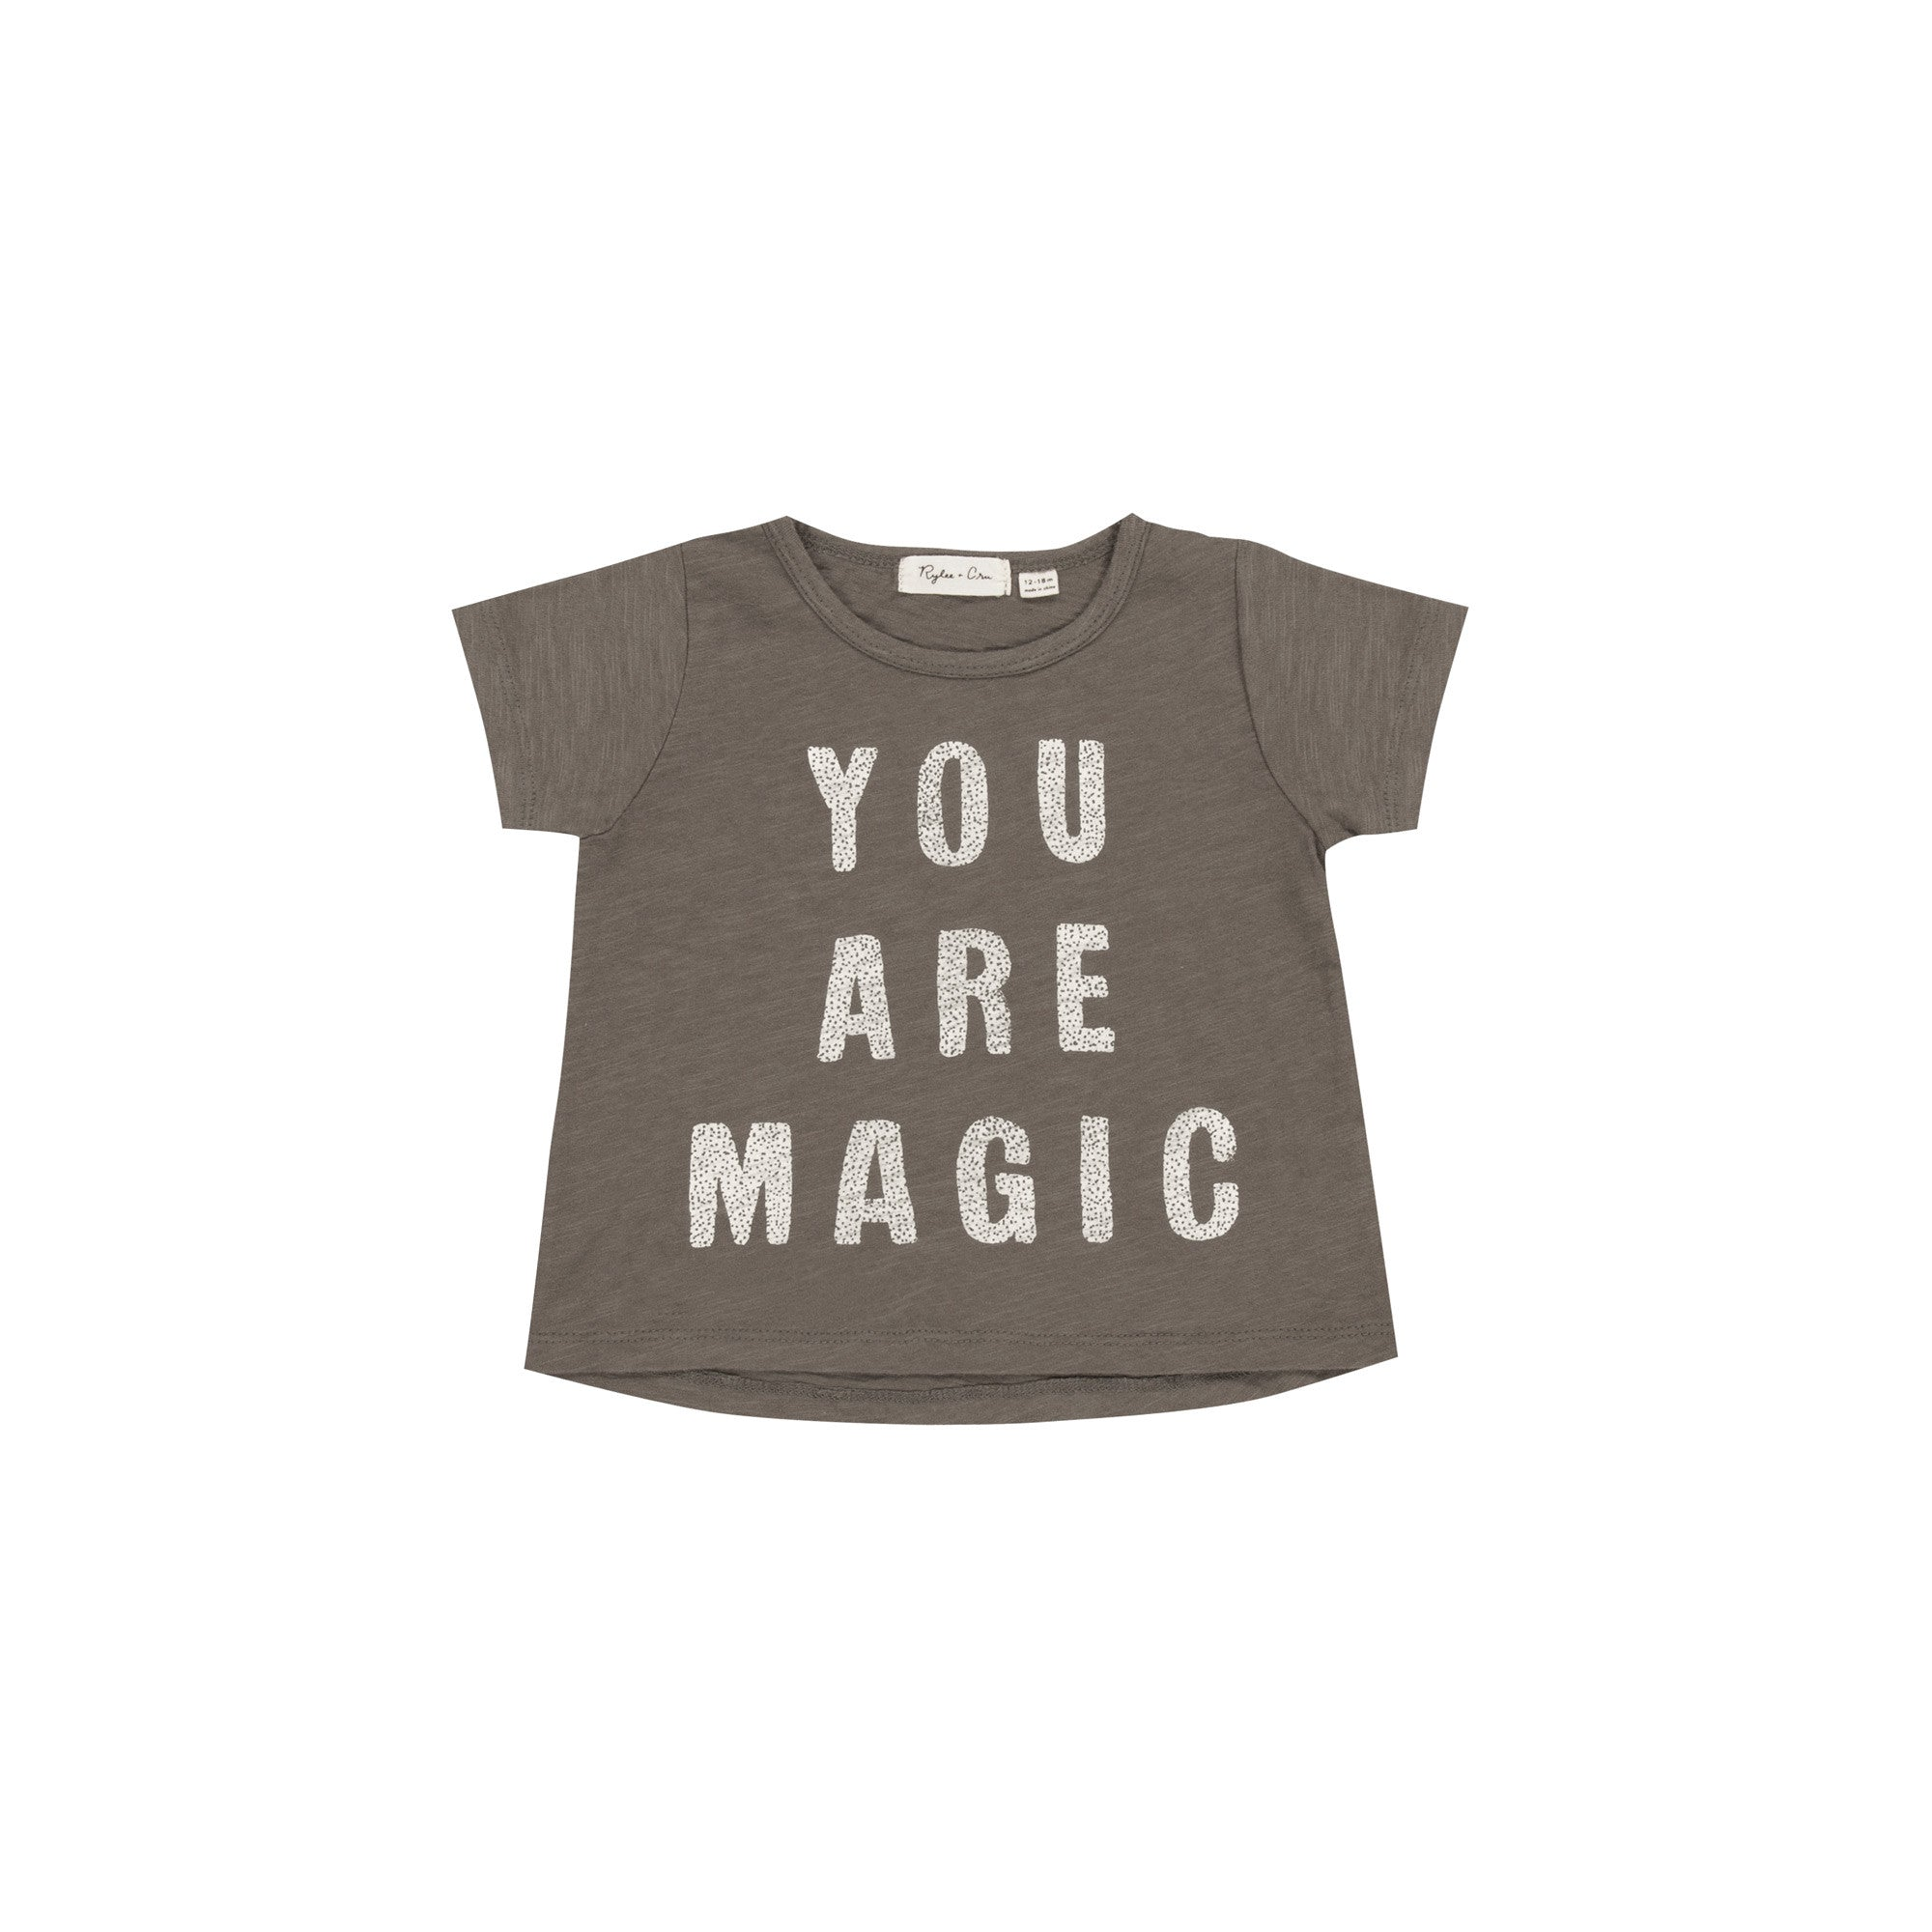 You are Magic baby tee by Rylee and Cru